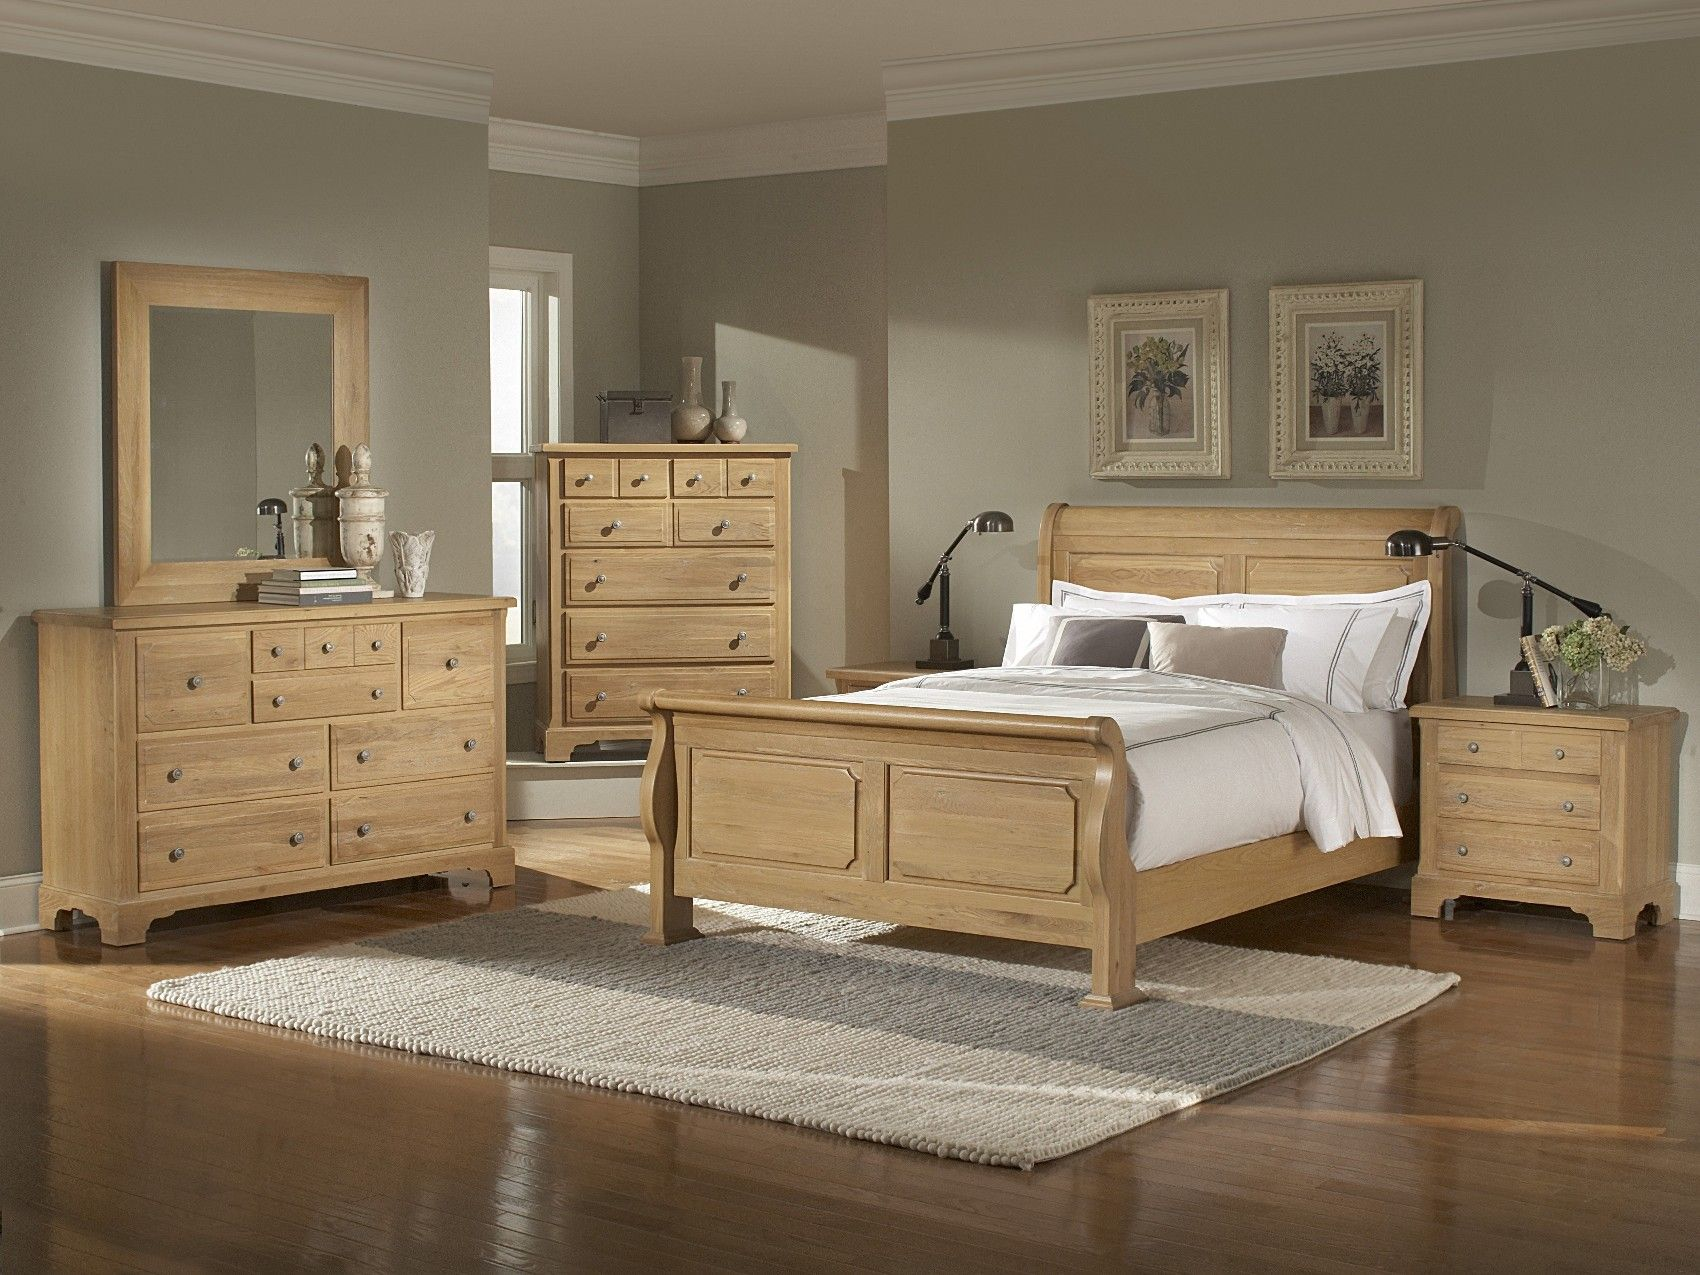 horne strong striking wallpaper bedroom image zachary gold color and of furniture homes sets